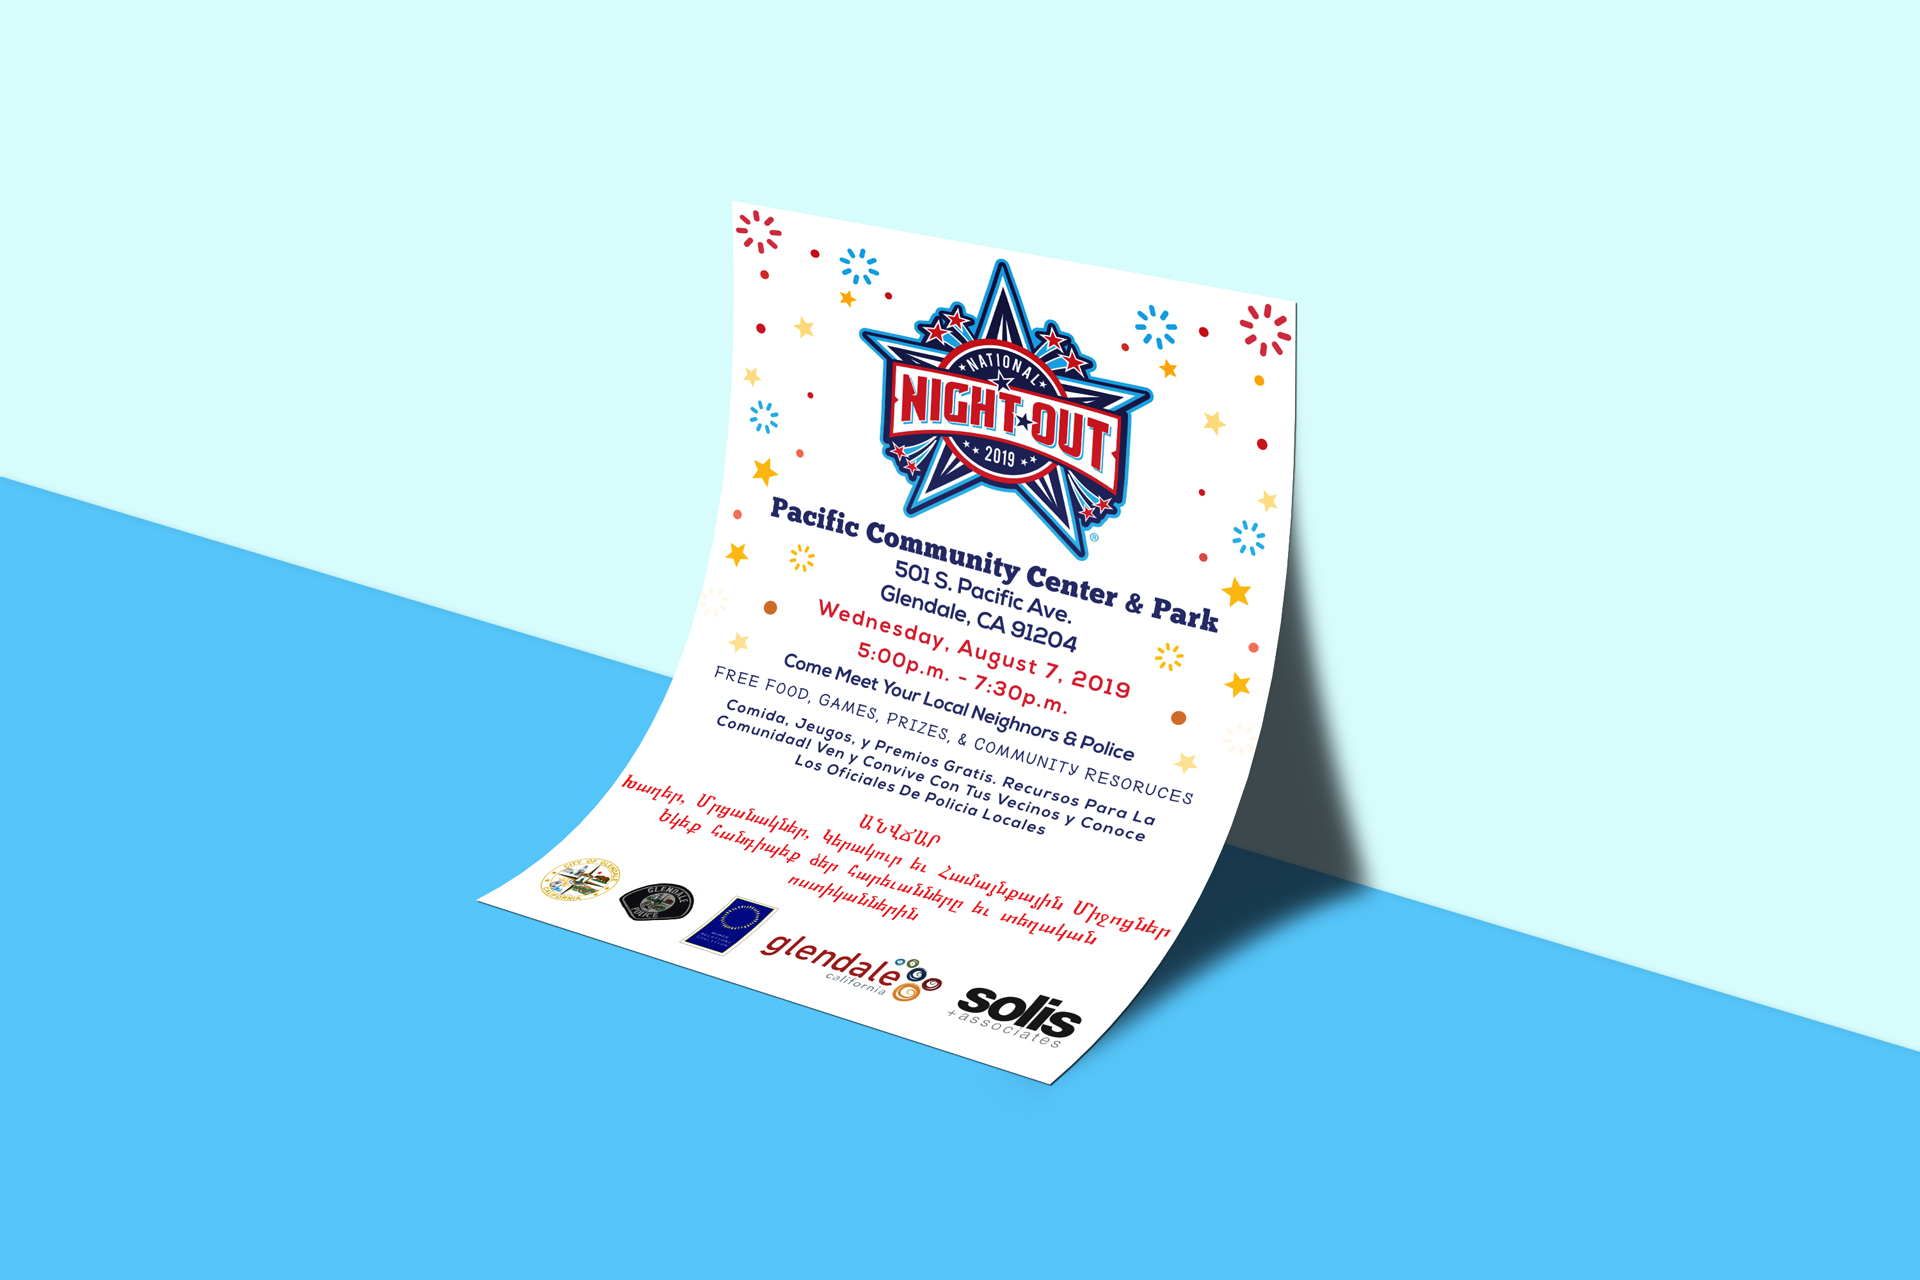 nationalnightout_2019_flyer